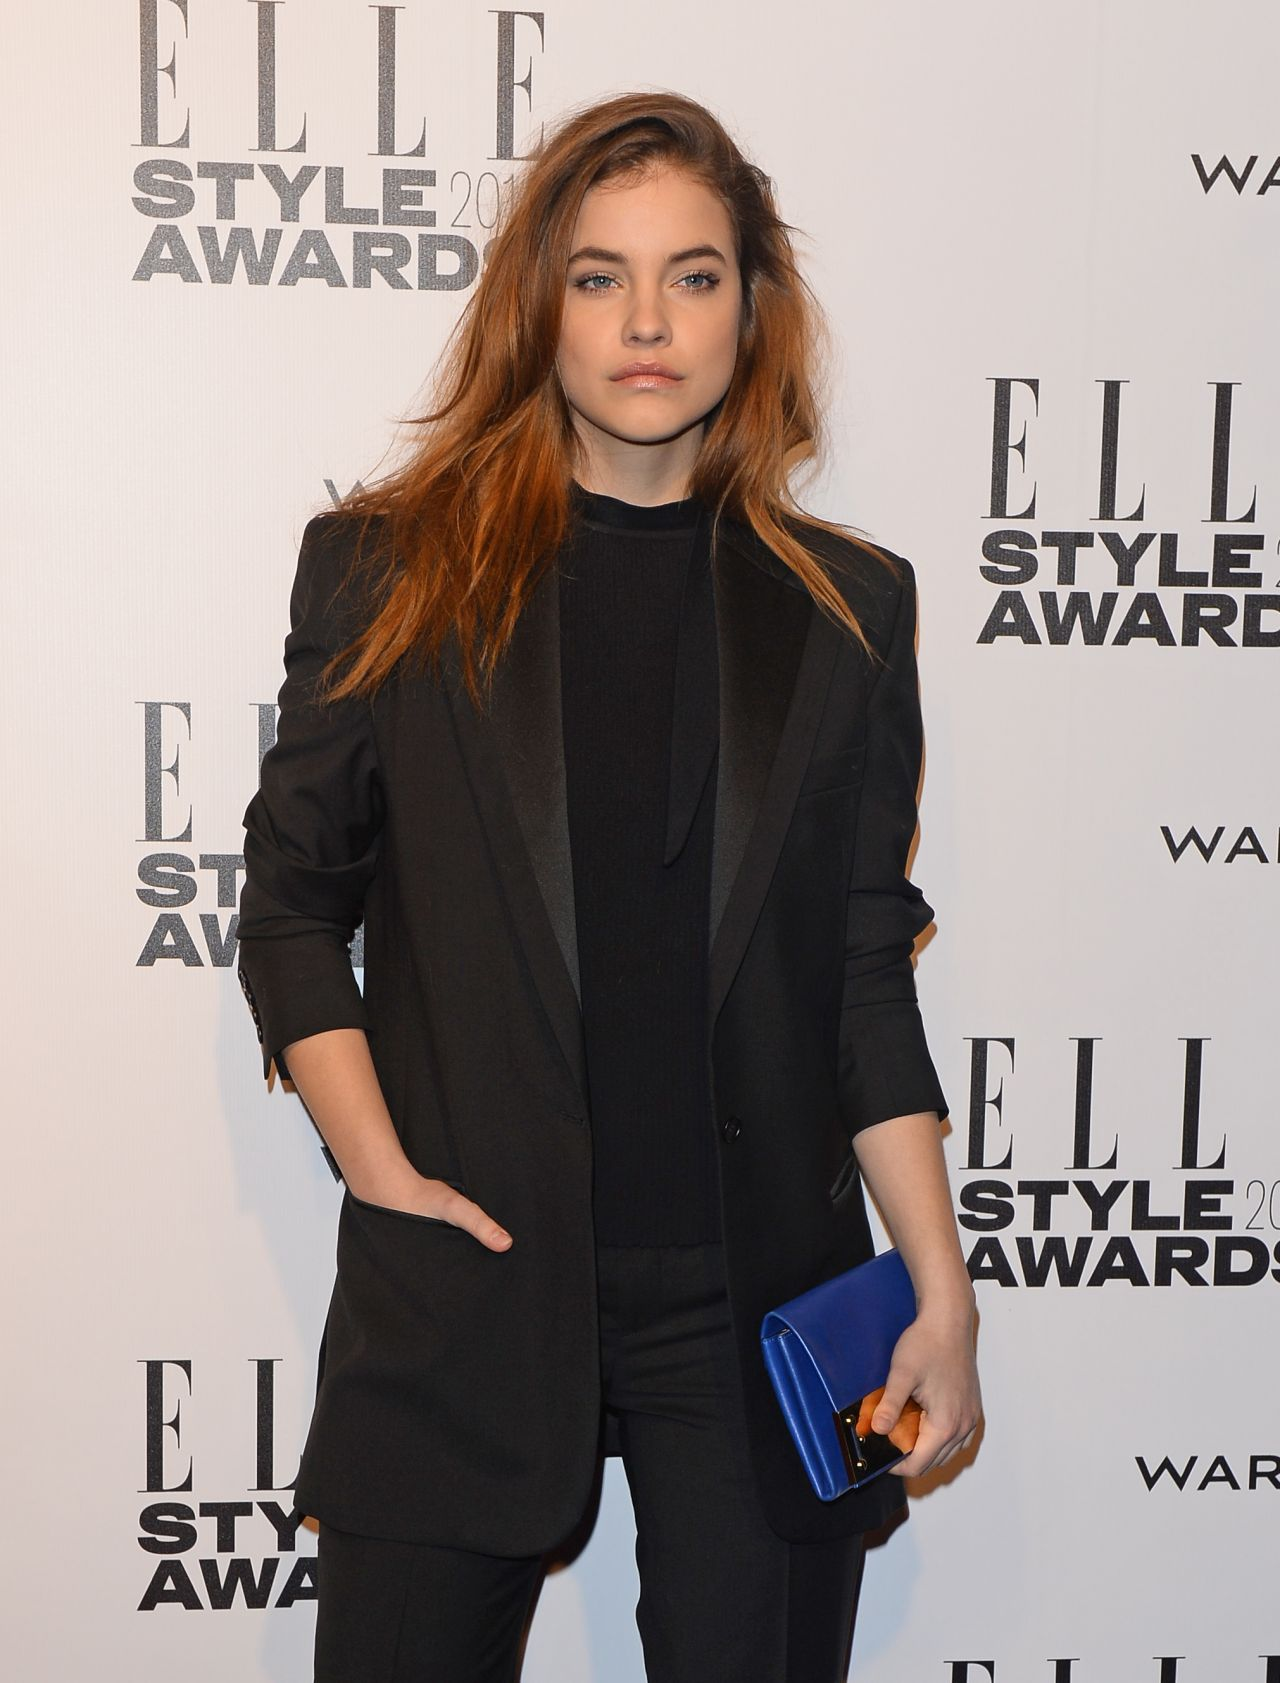 Barbara Palvin - ELLE Style Awards 2014 in London